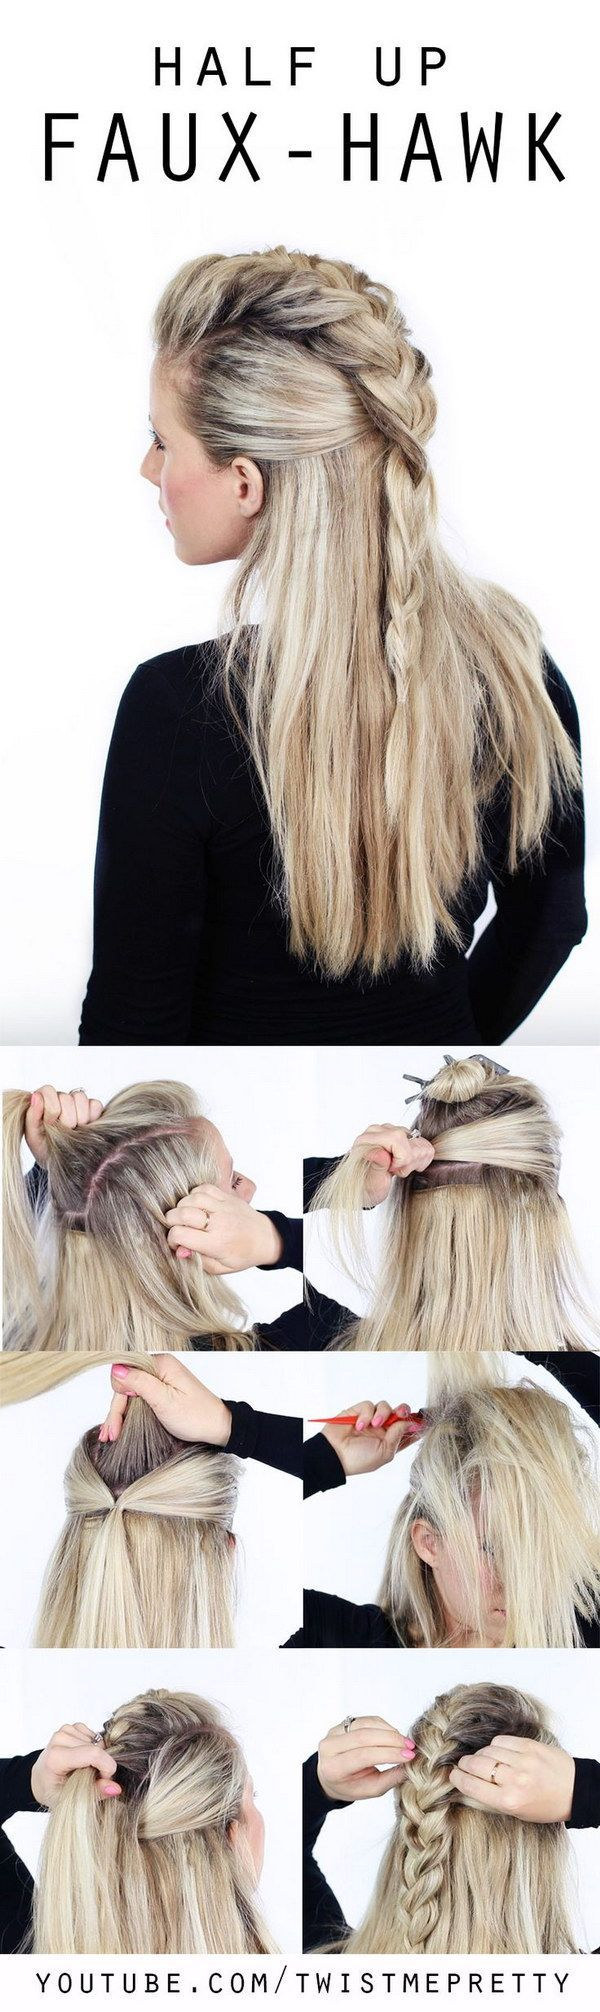 Pin by alicia garn on hair styles pinterest hair style makeup